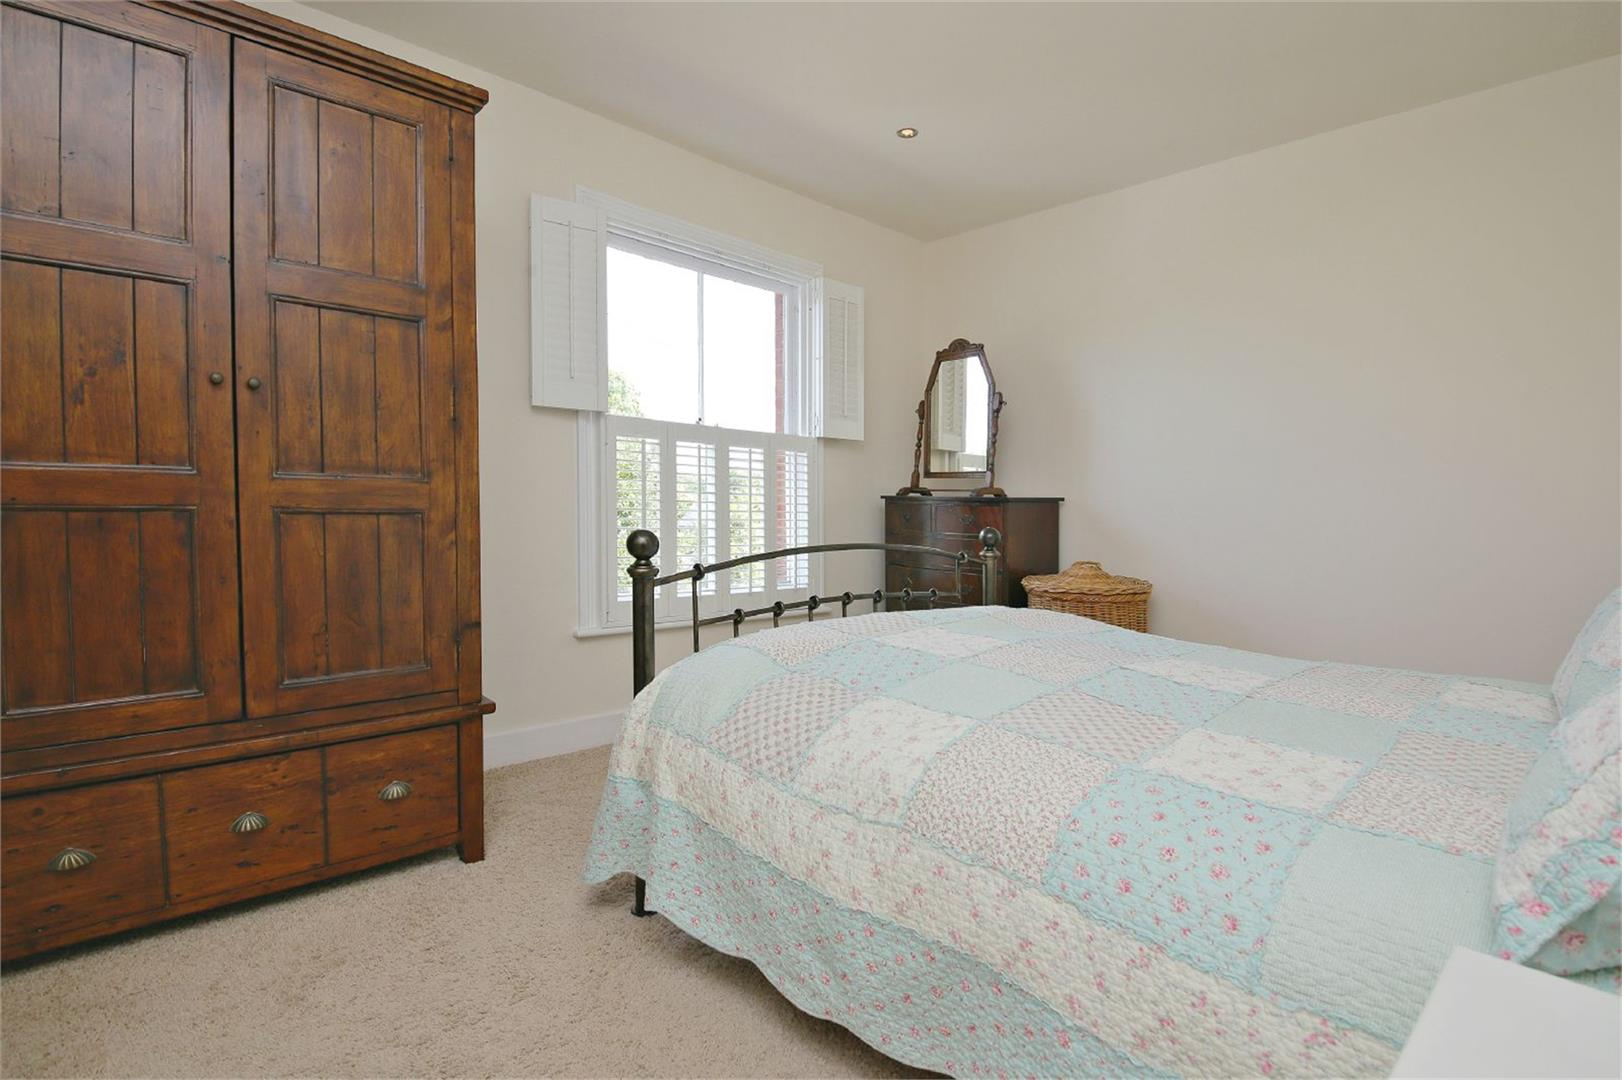 2 bed to rent in Letchmore Heath - (Property Image 5)